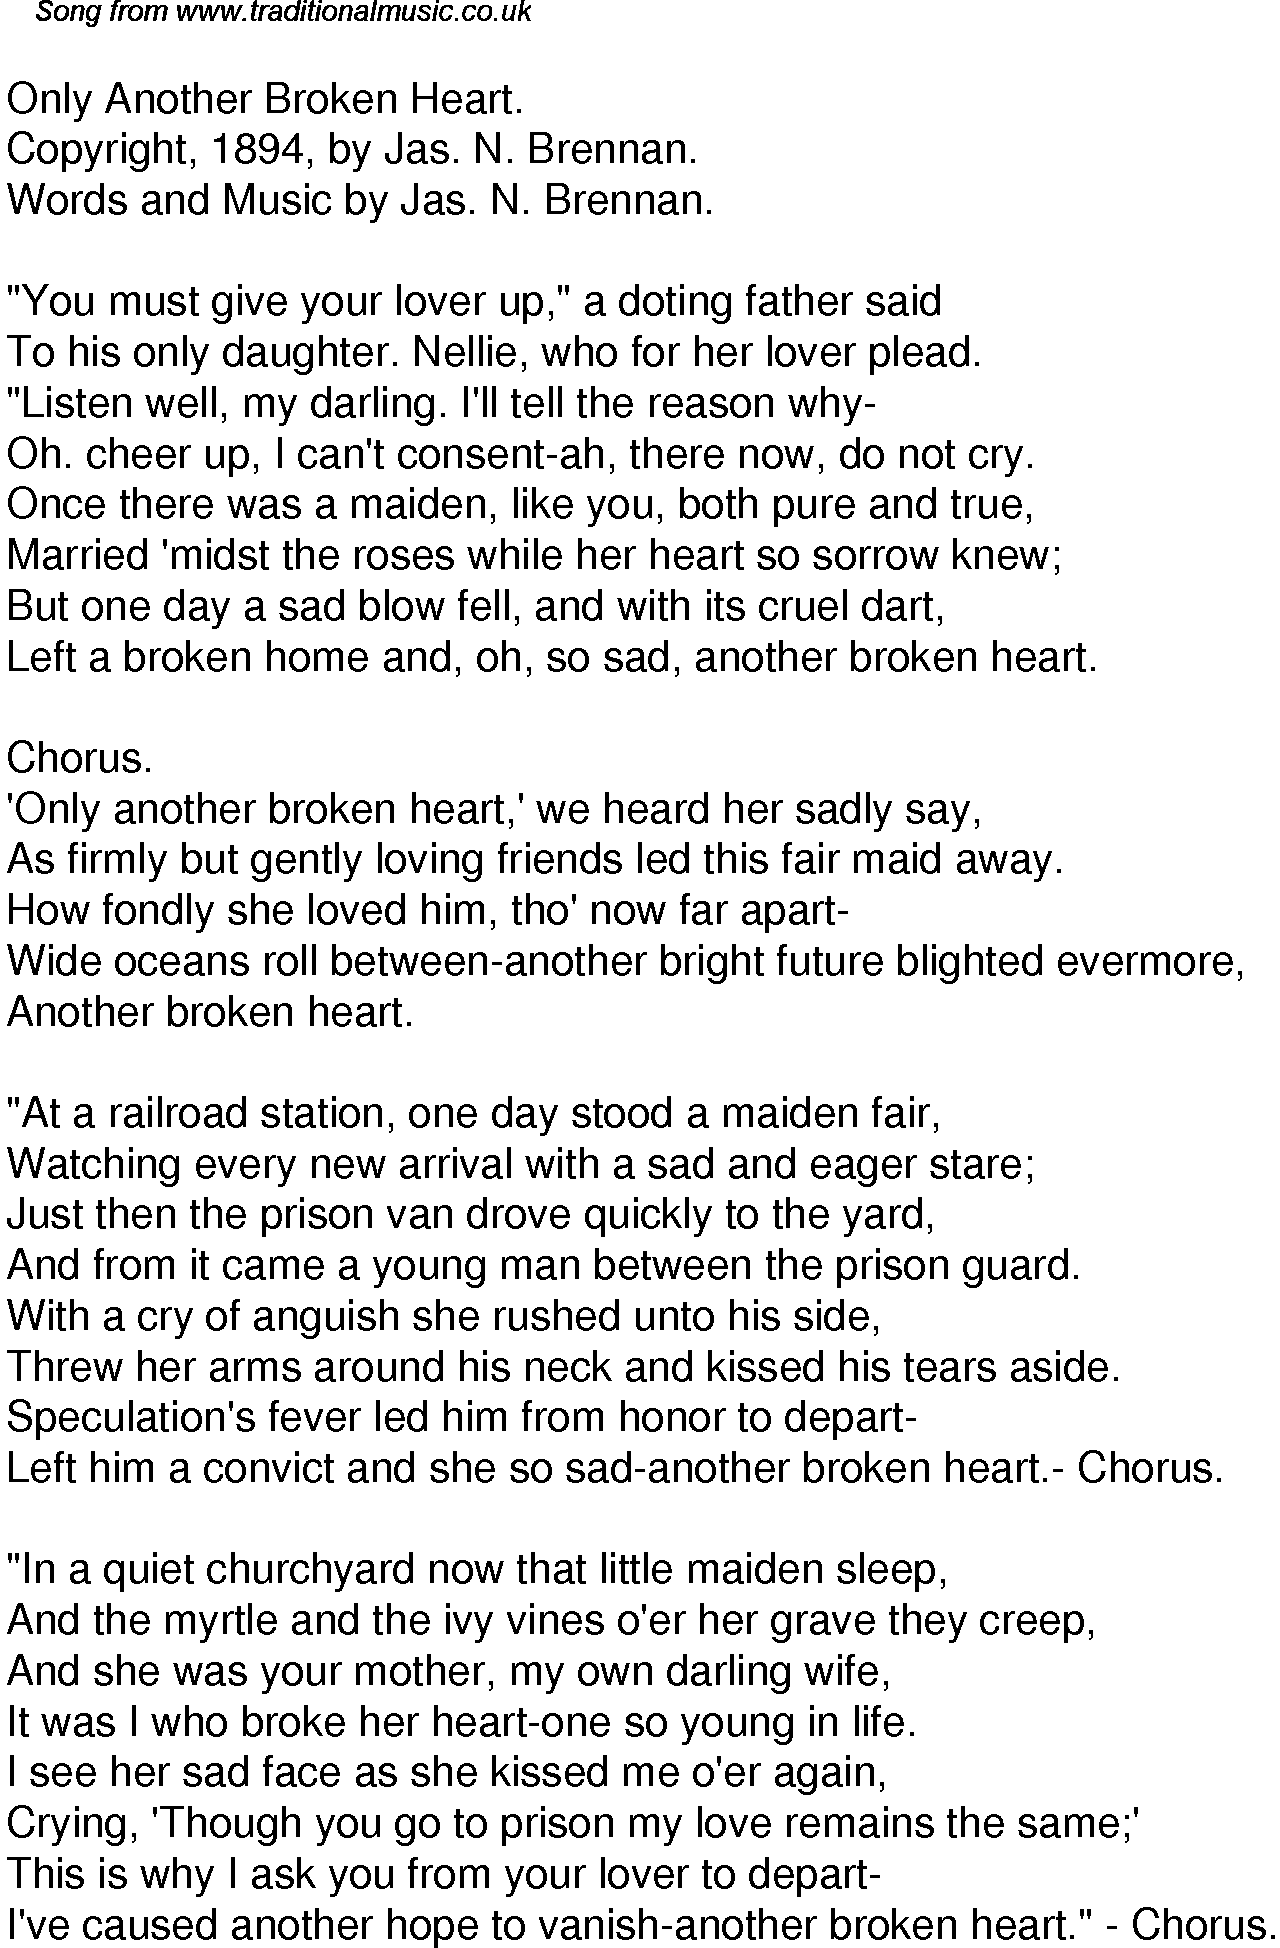 Old Time Song Lyrics For 45 Only Another Broken Heart